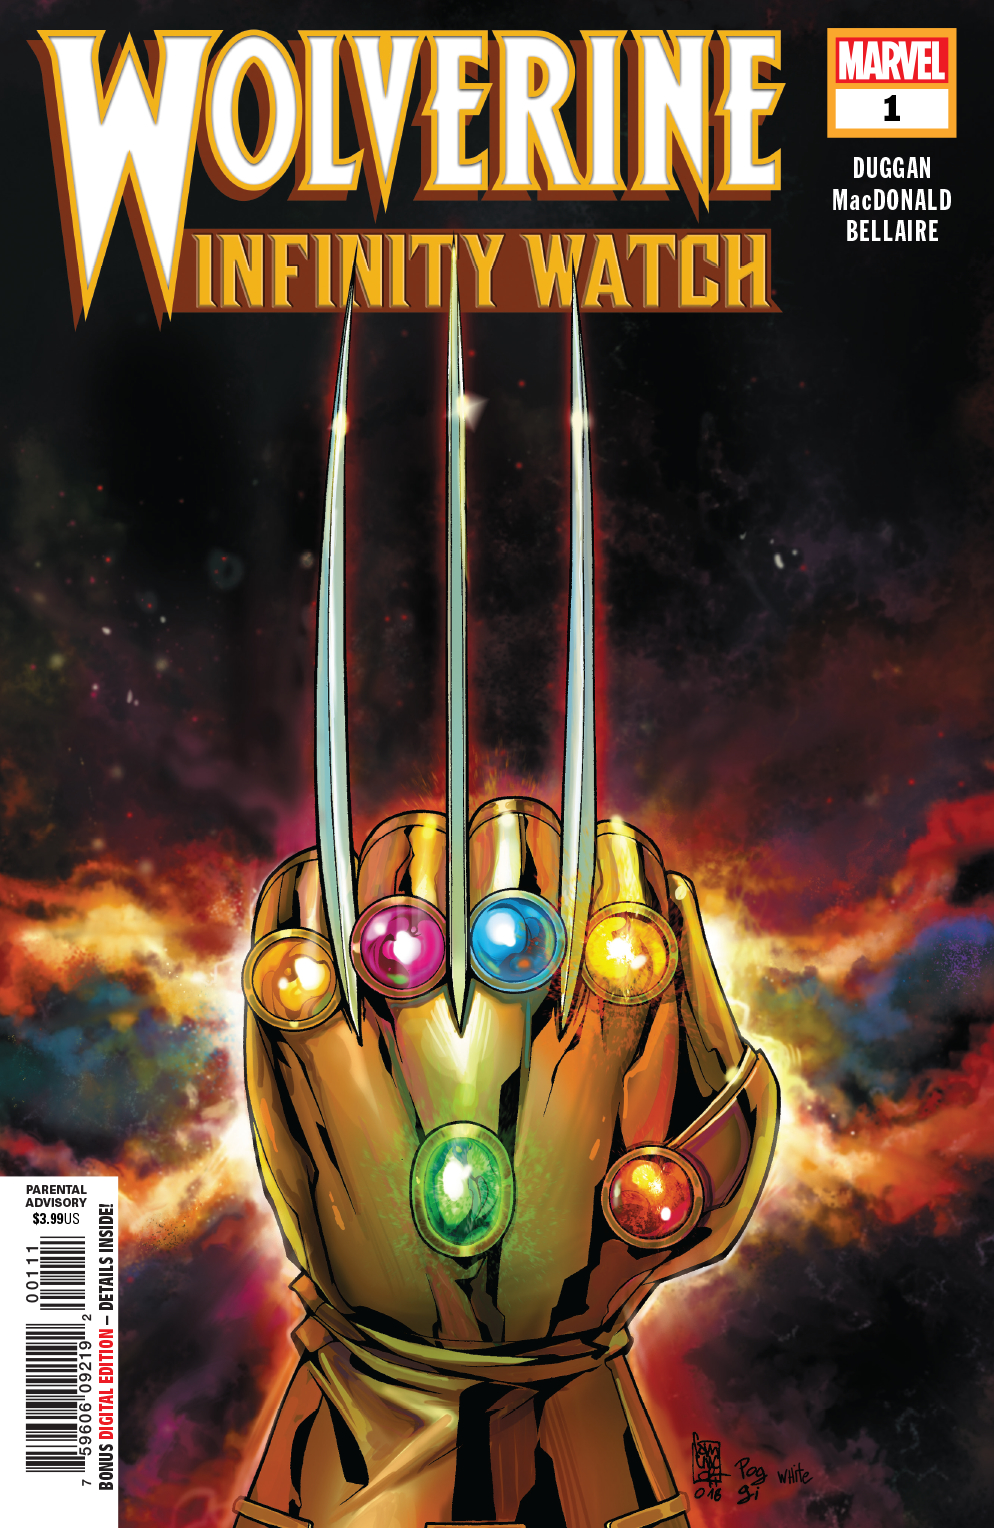 WOLVERINE INFINITY WATCH #1 (OF 5)